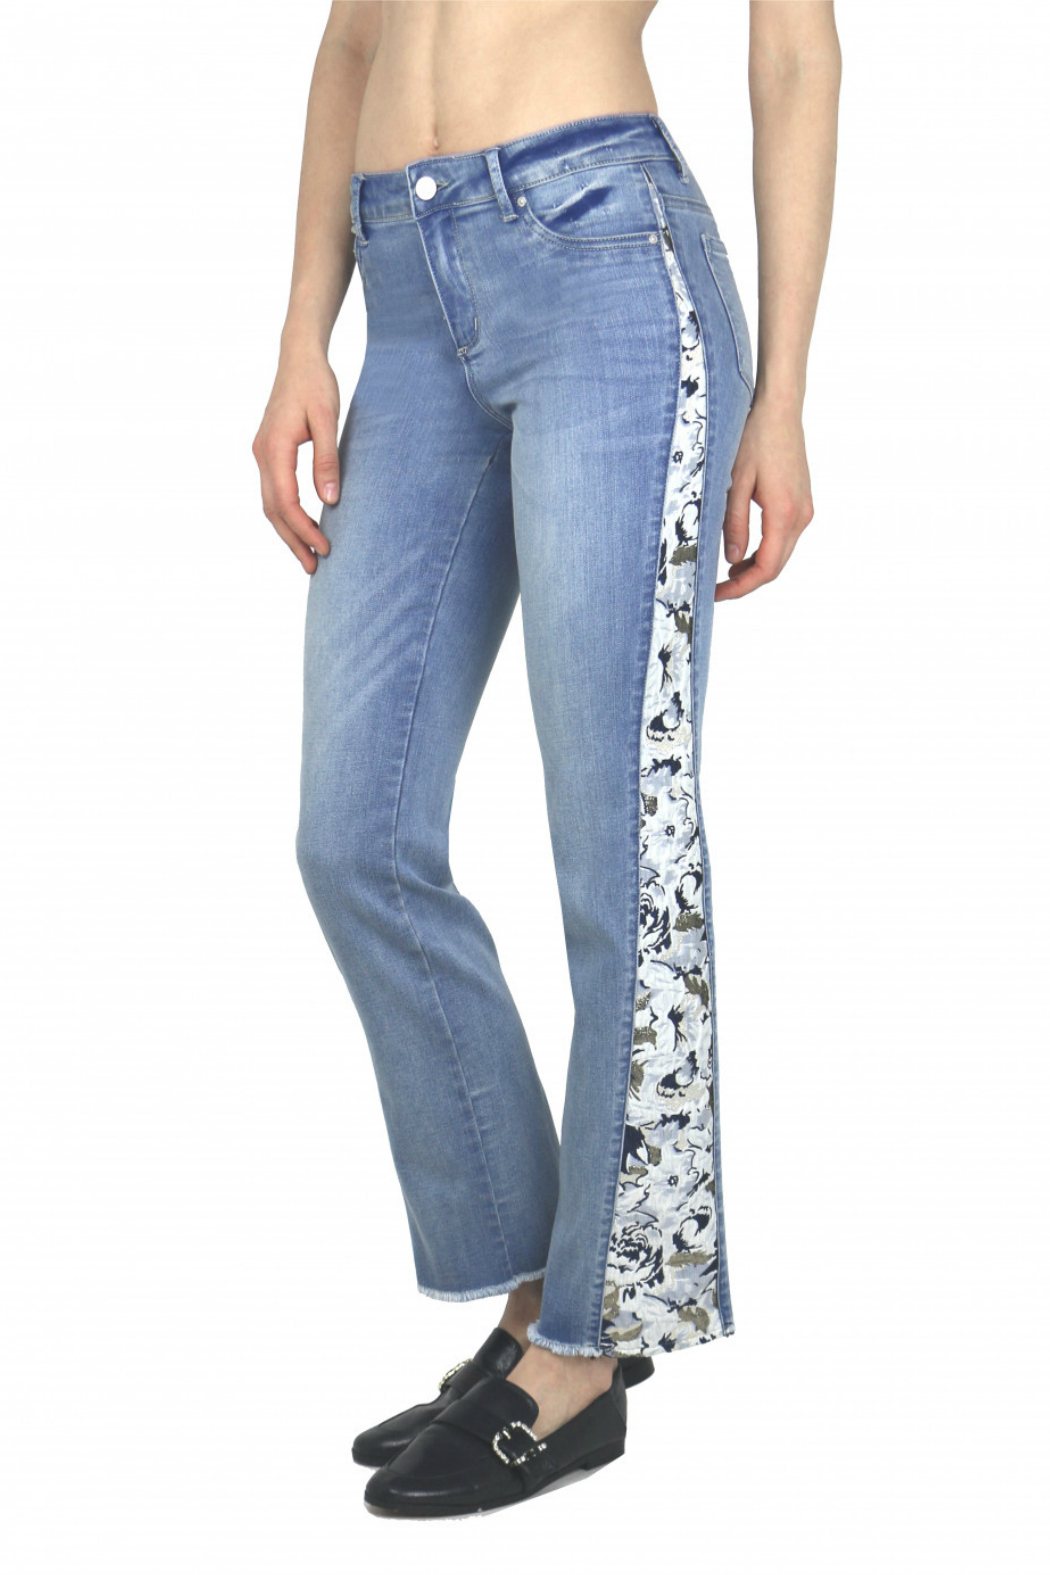 Tractr (New York Poplin) Lightweight Denim with Floral Side Panel - Side Cropped Image